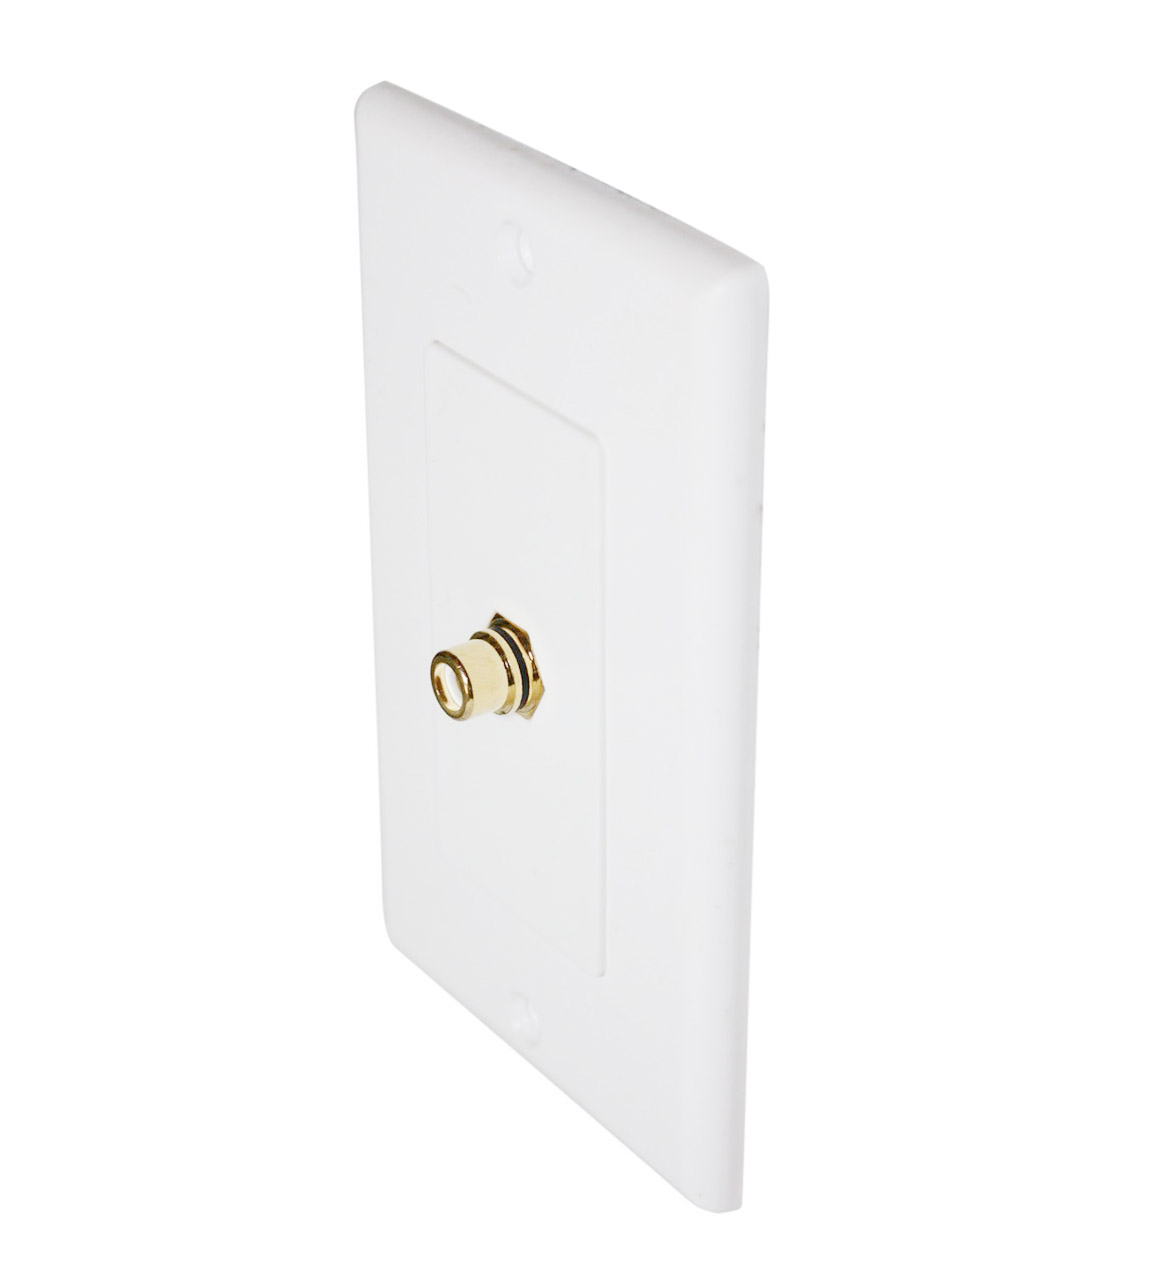 Buy Subwoofer Rca To Rca Pass Through Wall Plate Terminal Online For At